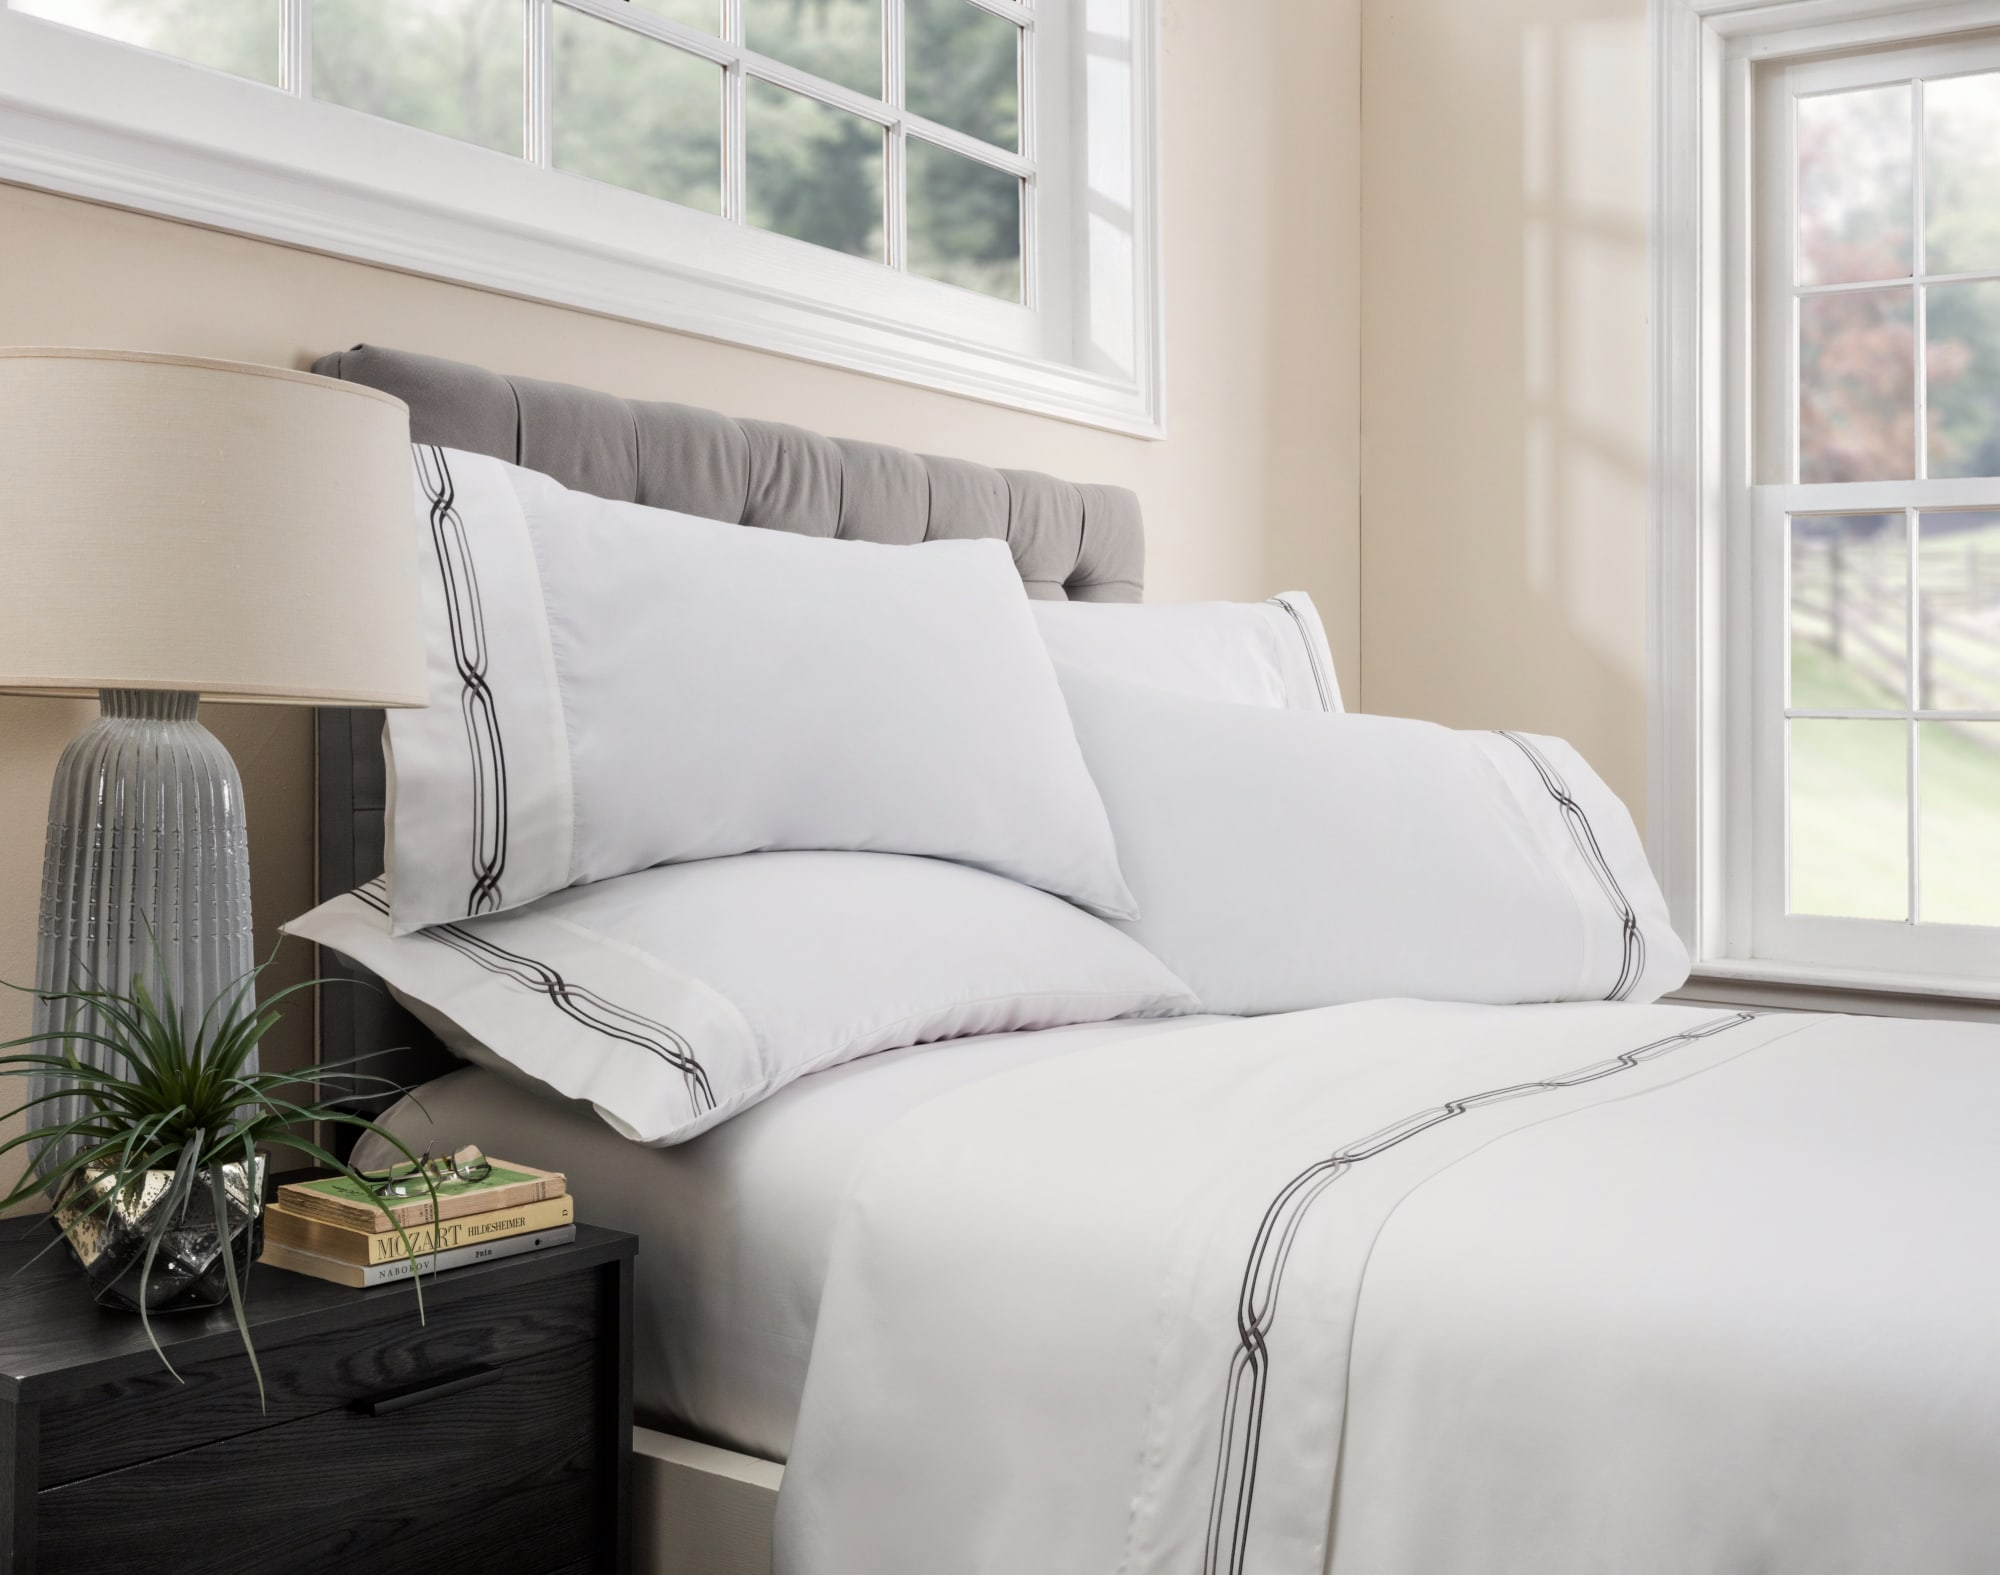 Linens & Bedding by ELEGANT STRAND seen at Private Residence - Boca Raton, FL, Boca Raton - Saint Tropez Embroidered Sheet Set